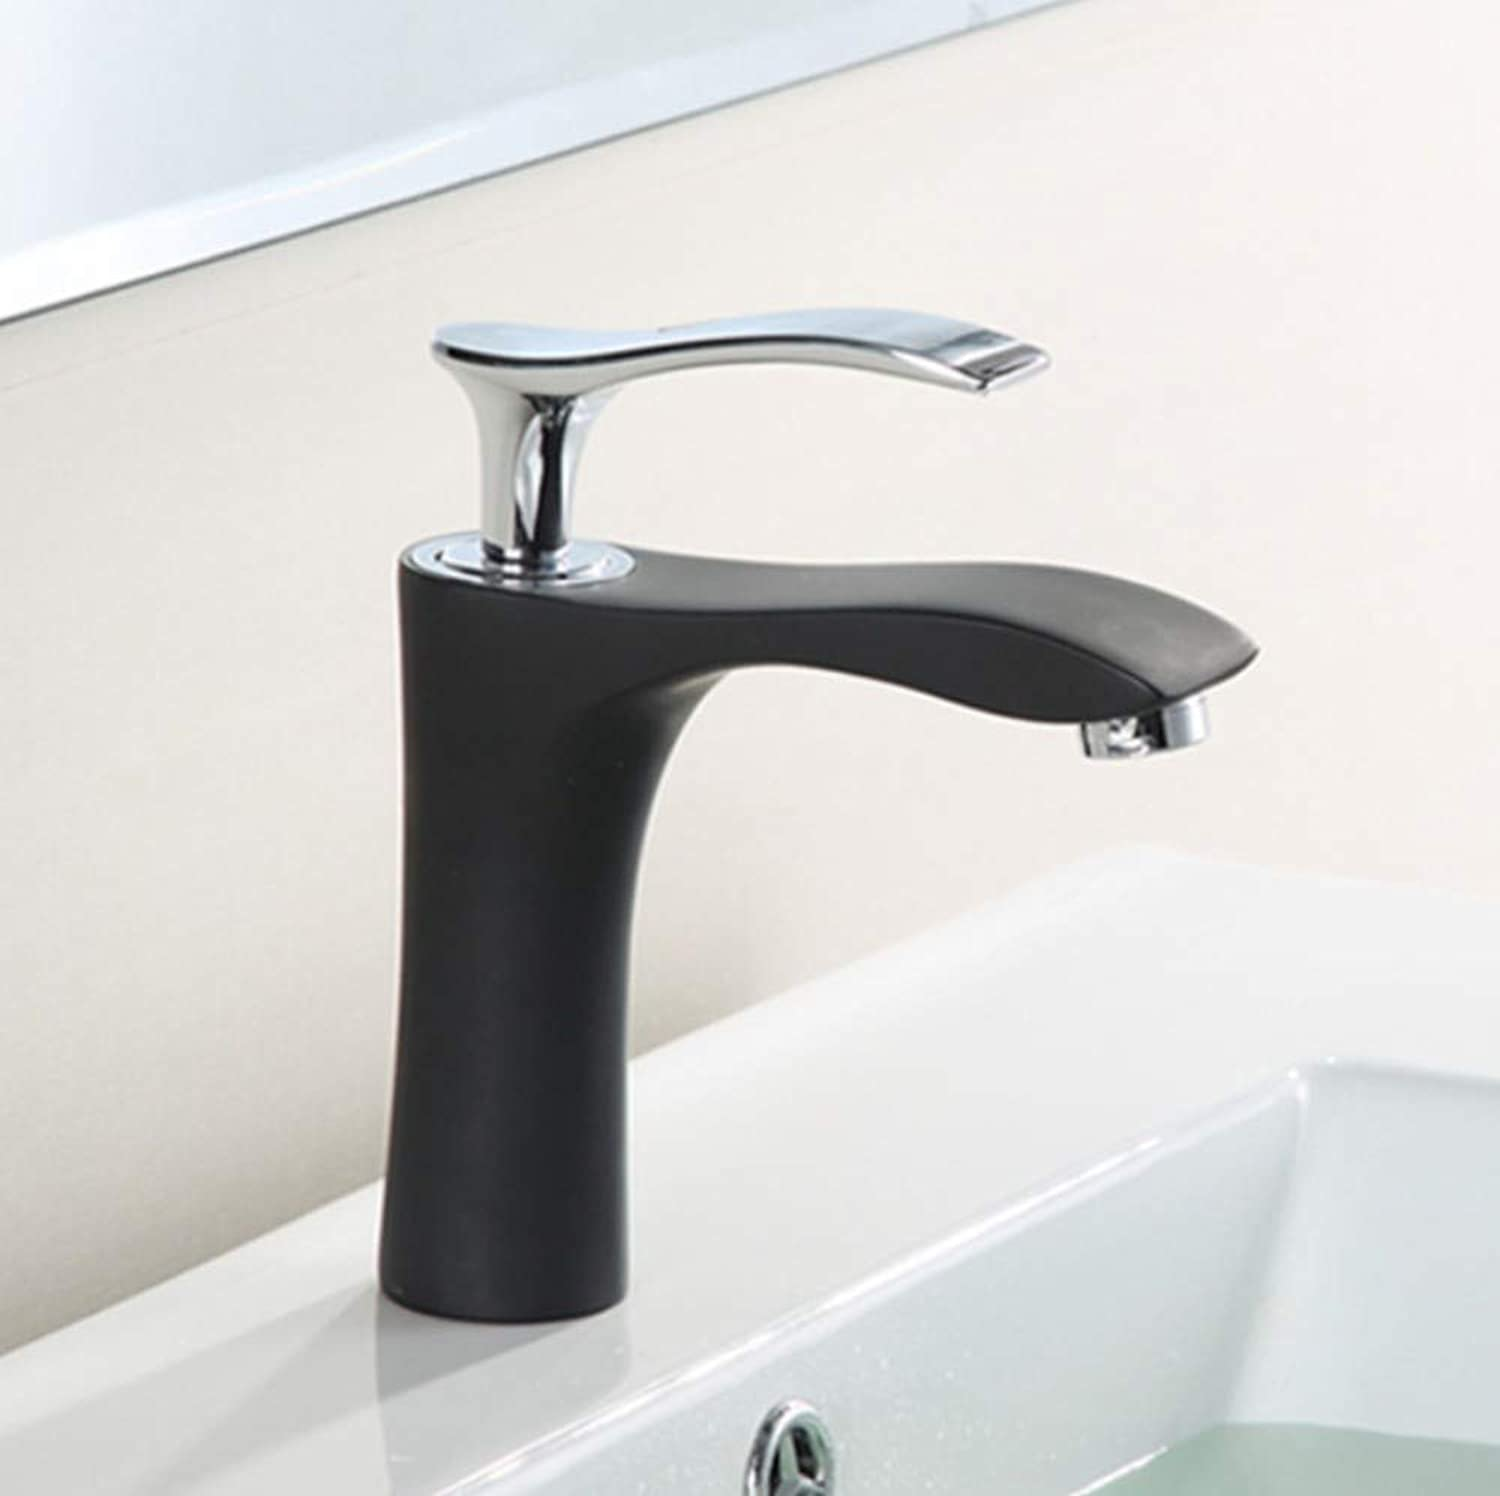 Bathroom Sink Basin Lever Mixer Tap Black Matte Grinding Paint Cold and Hot Water Faucet Washbasin Table Basin Basin Round Faucet